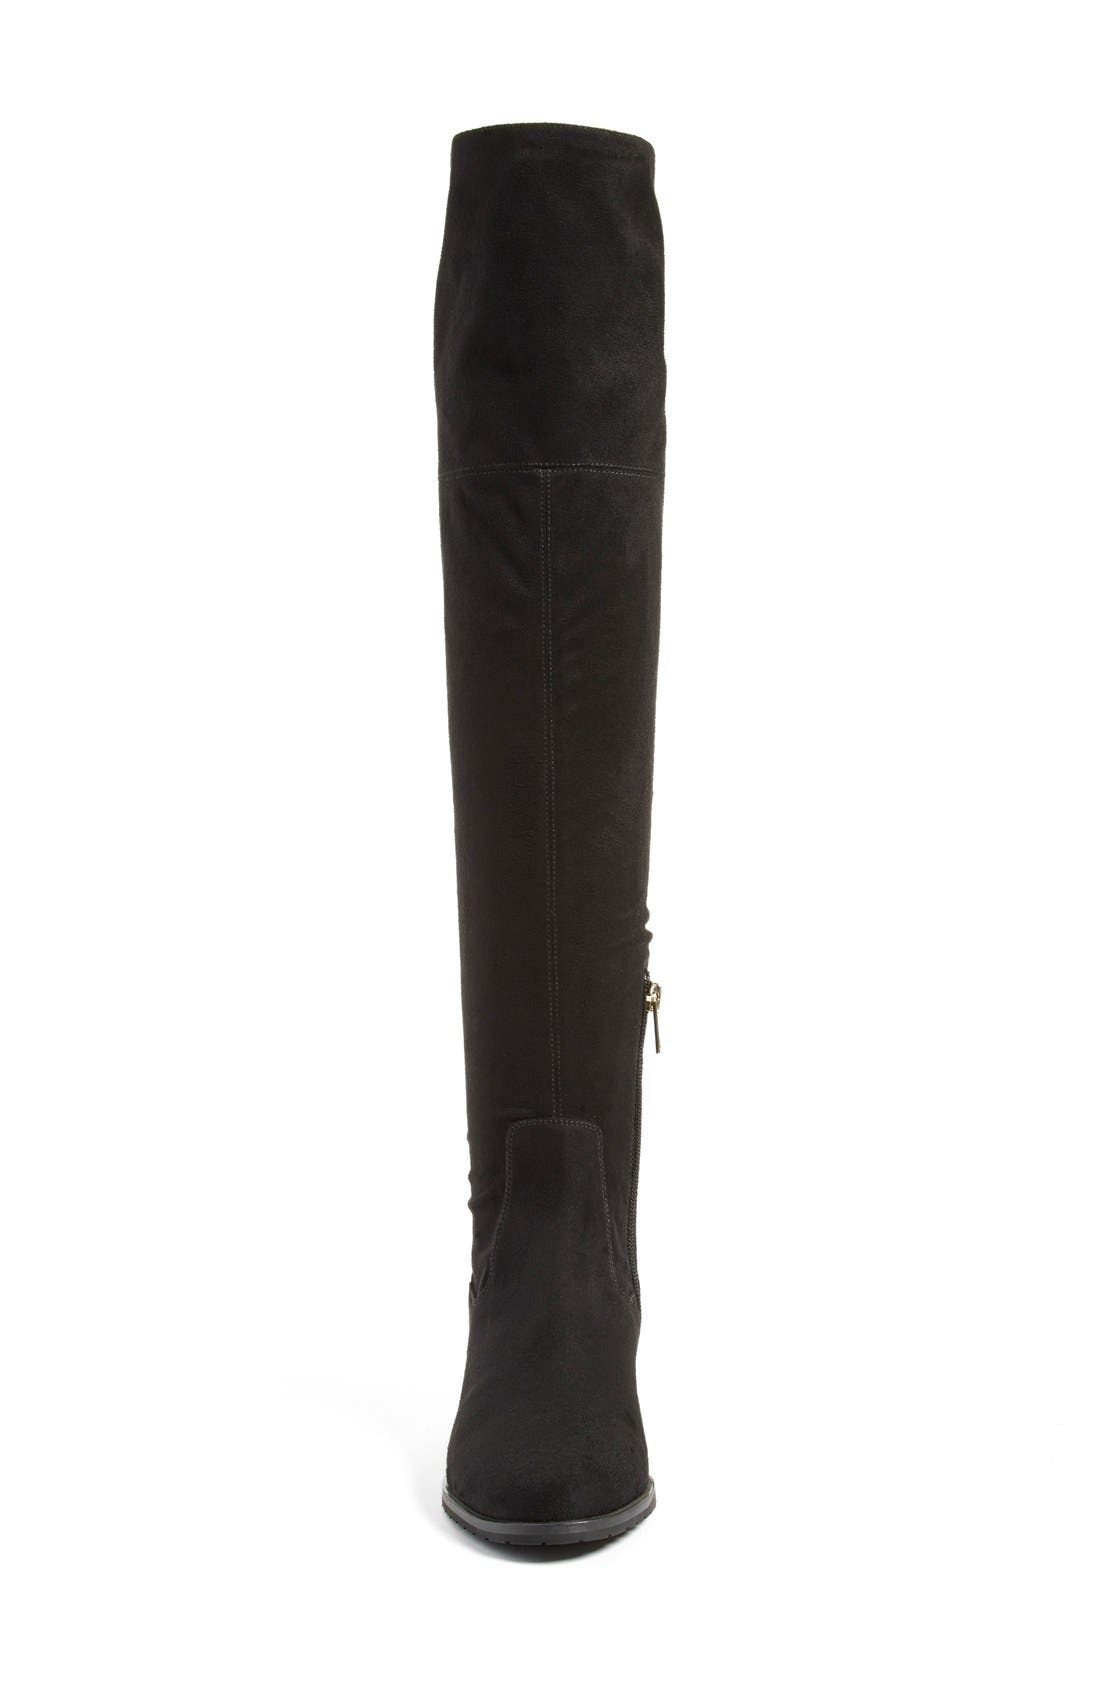 'Luci' Over the Knee Boot,                             Alternate thumbnail 2, color,                             001